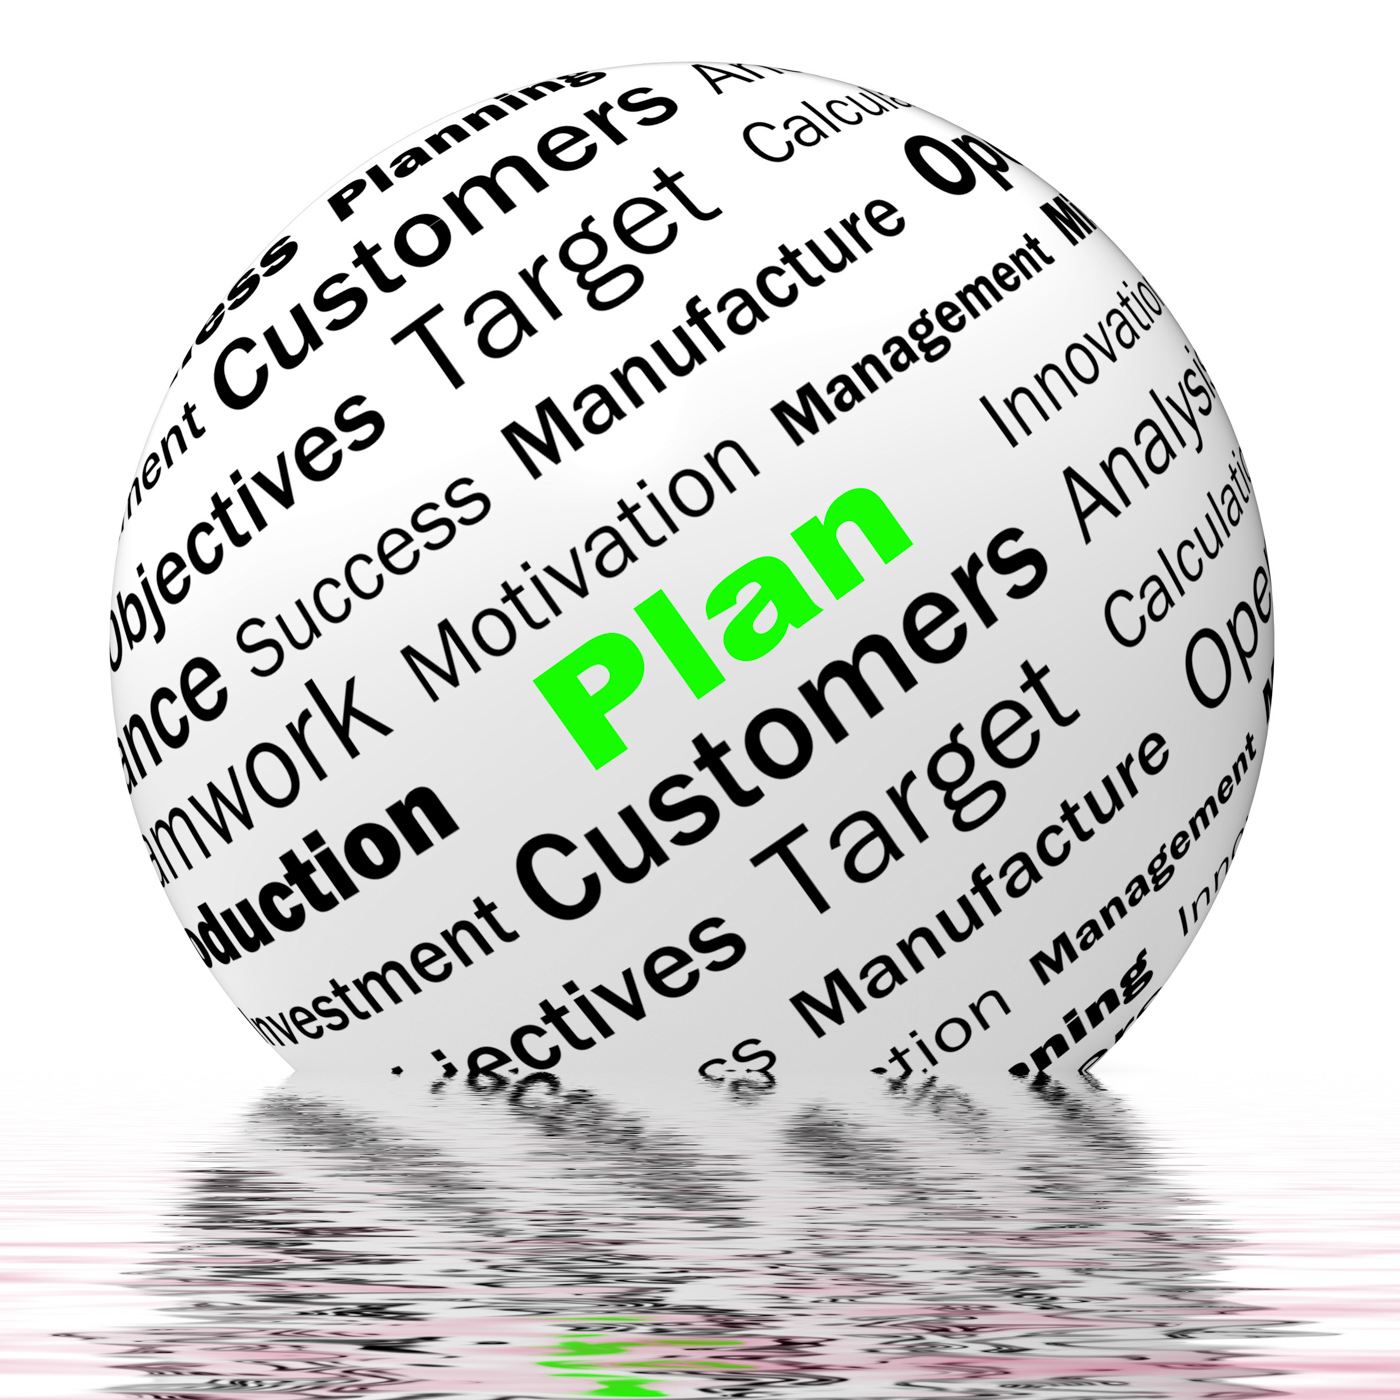 Plan sphere definition displays planning or objective managing photo